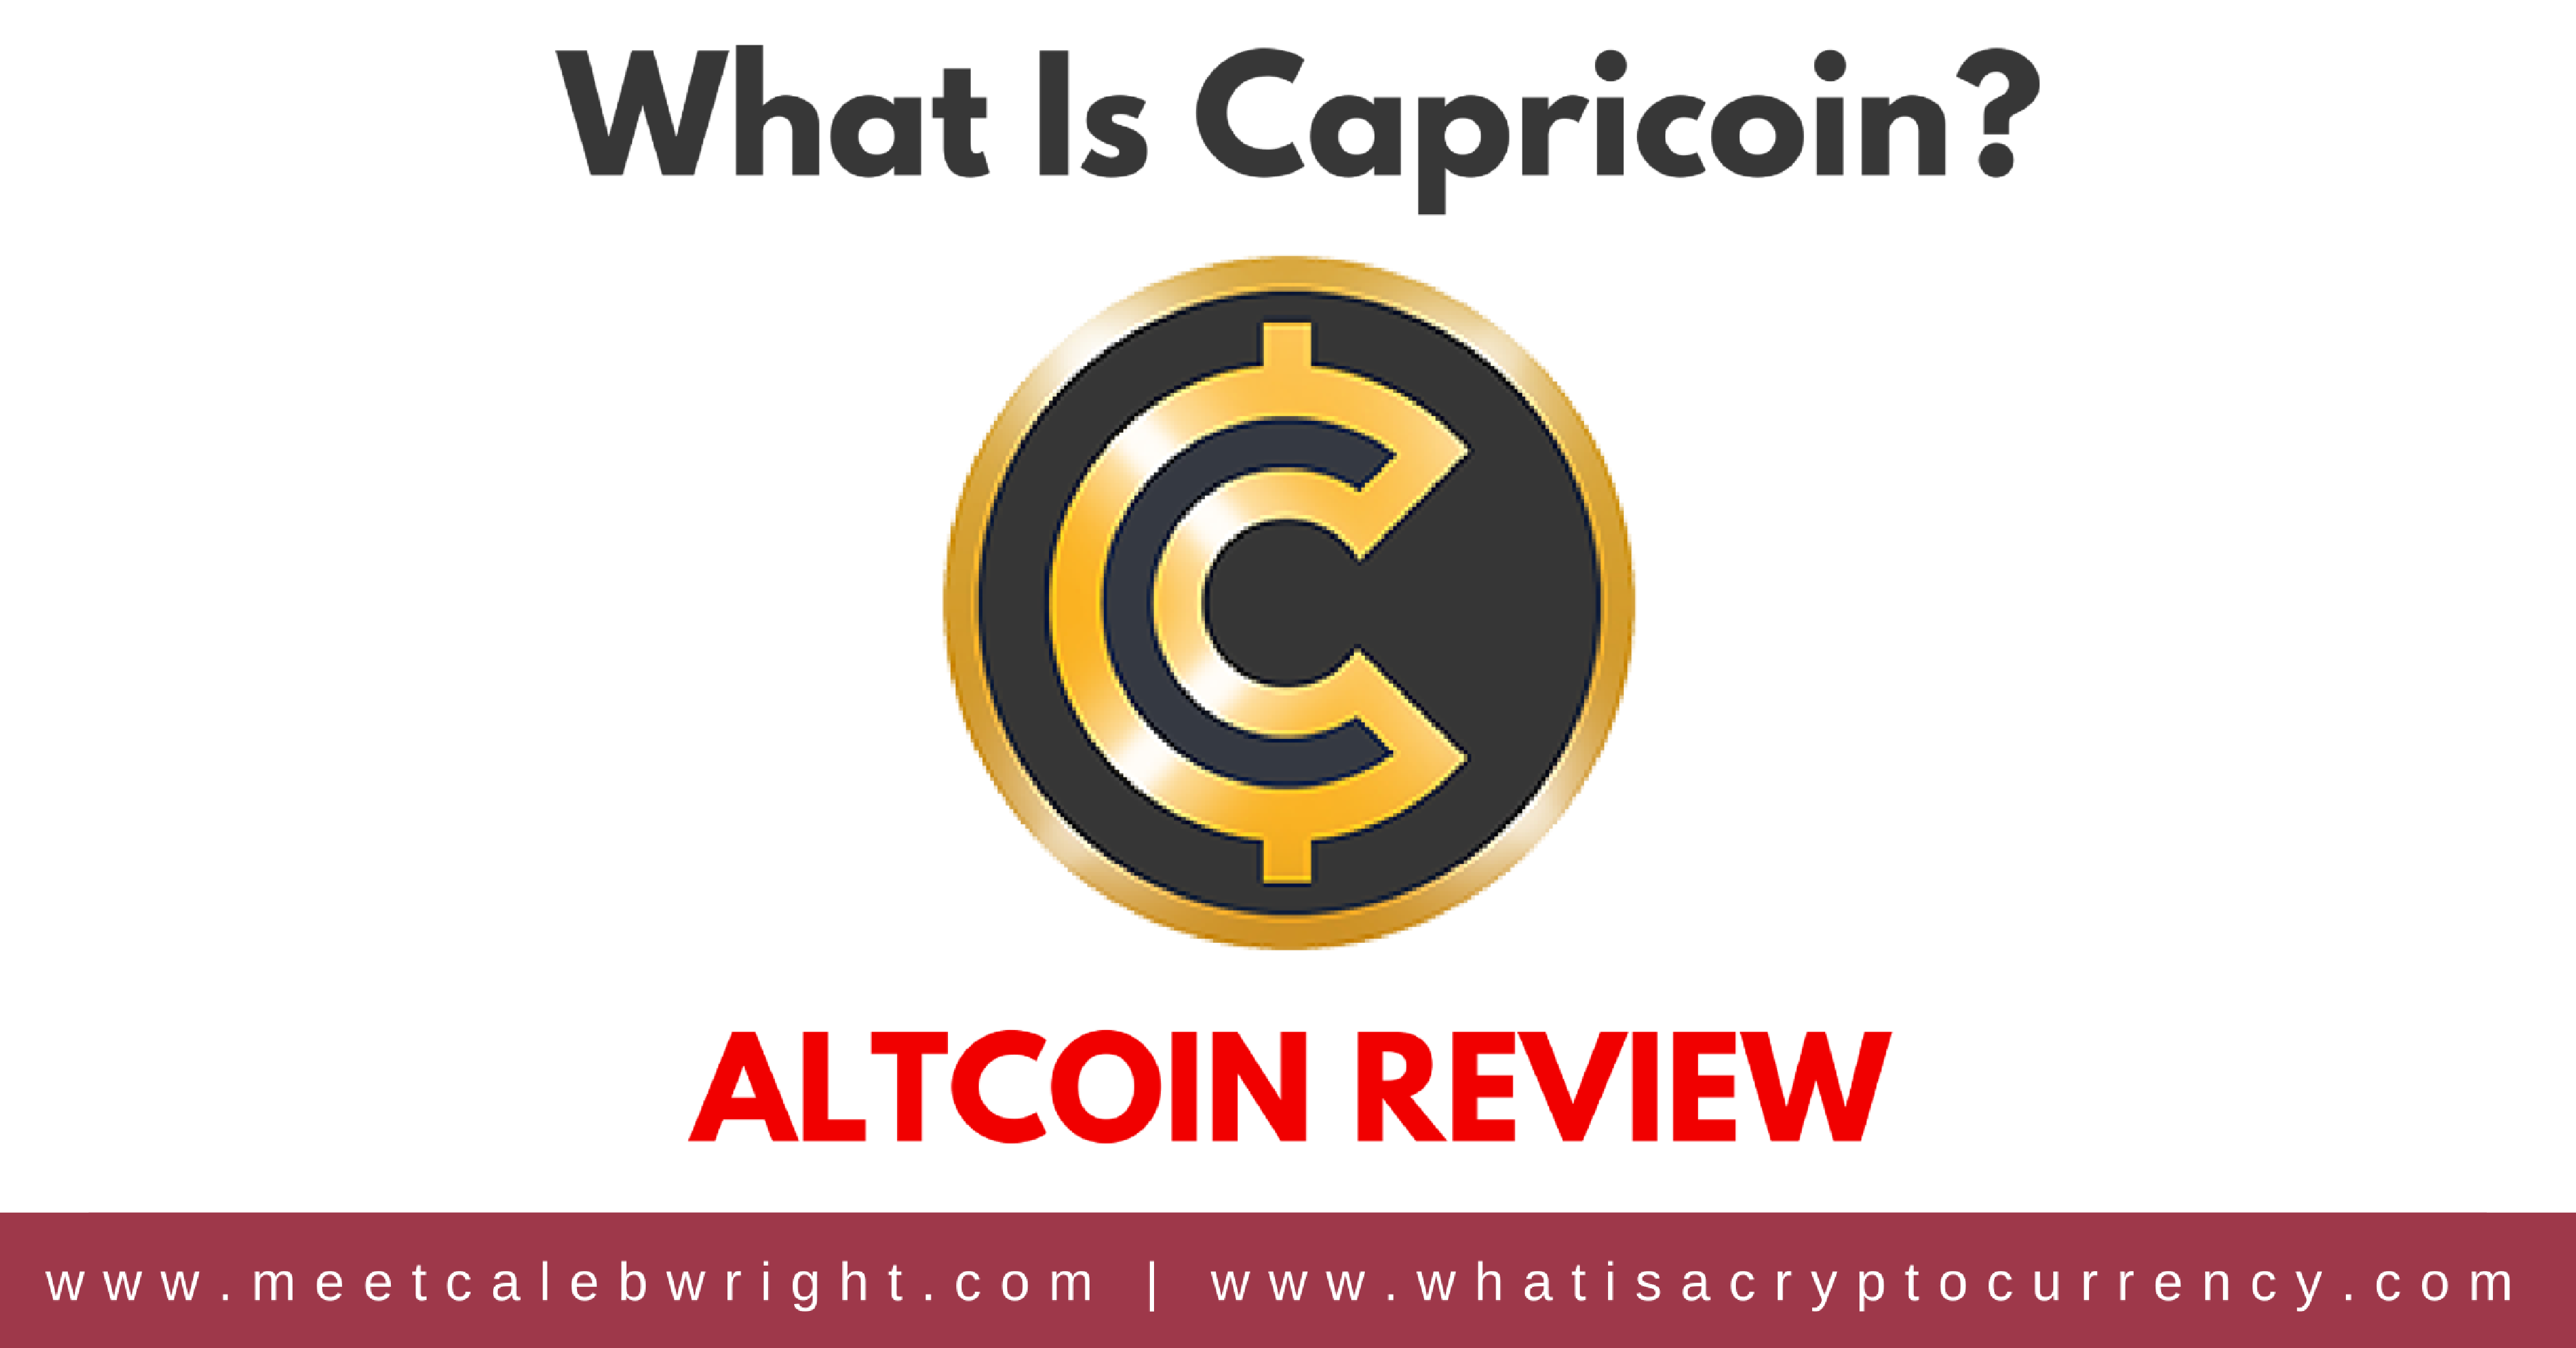 What Is Capricoin? | Altcoin Cryptocurrency Review